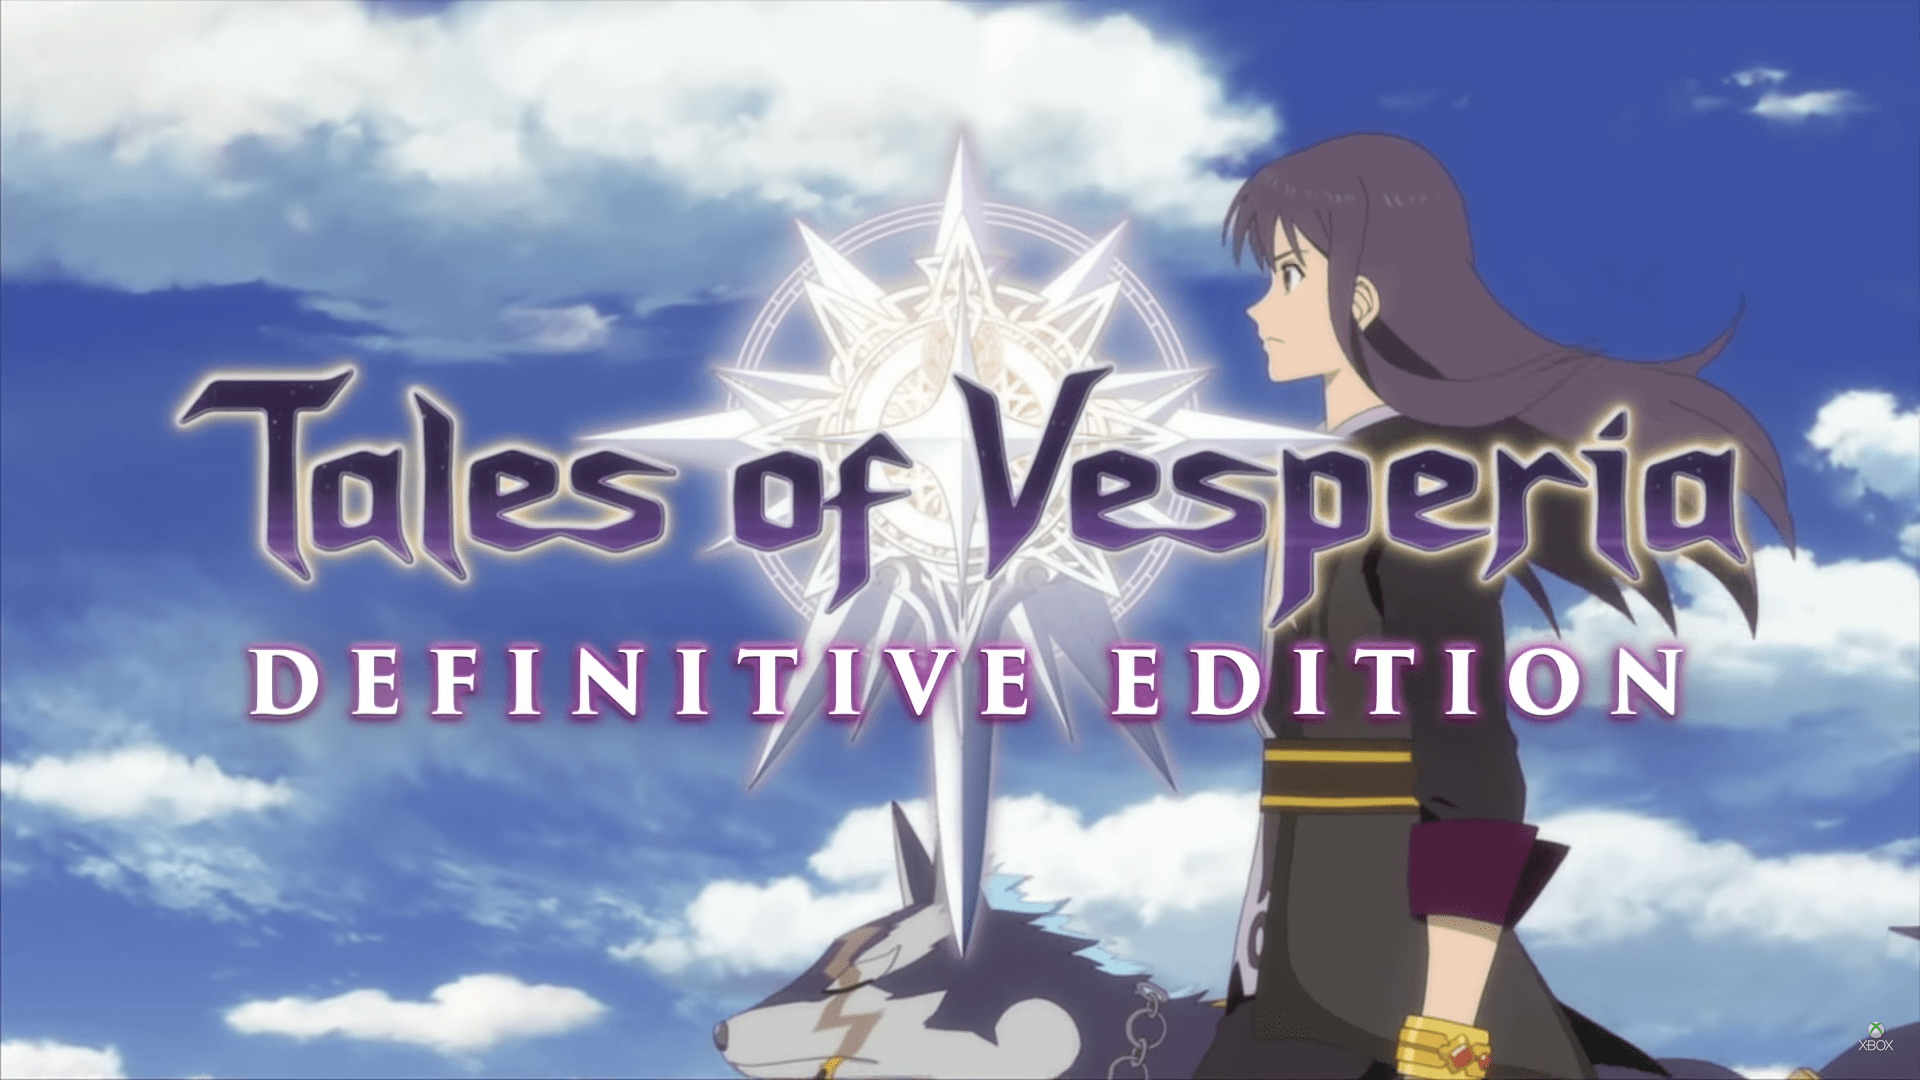 E3 2018 - Tales of Vesperia Definitive Edition